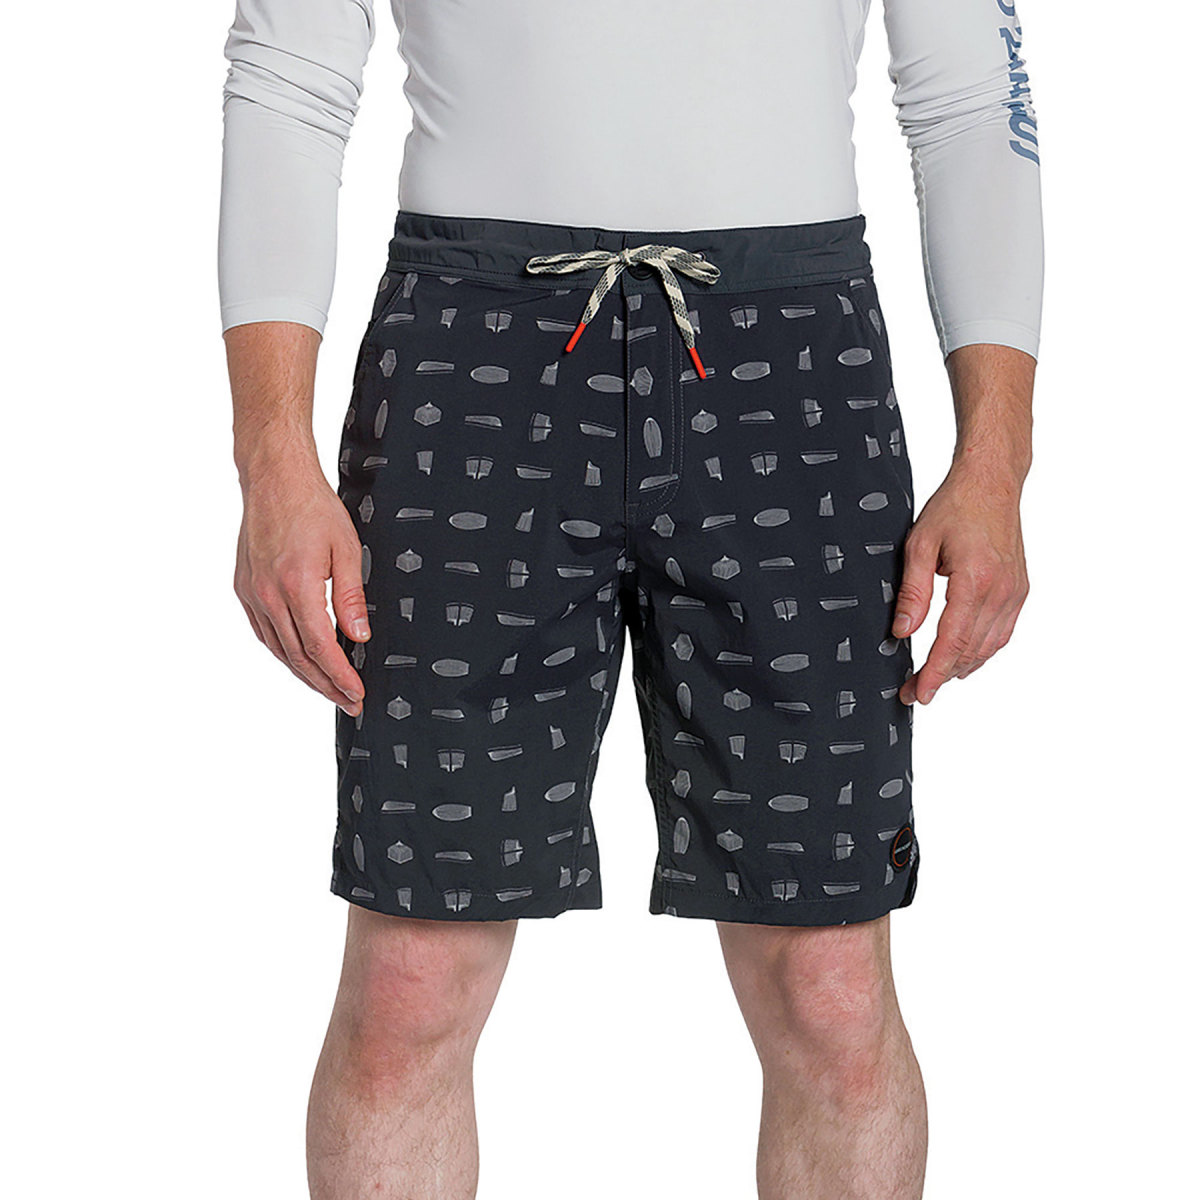 Men's boardshorts from the Grundéns  NetSourced collection.